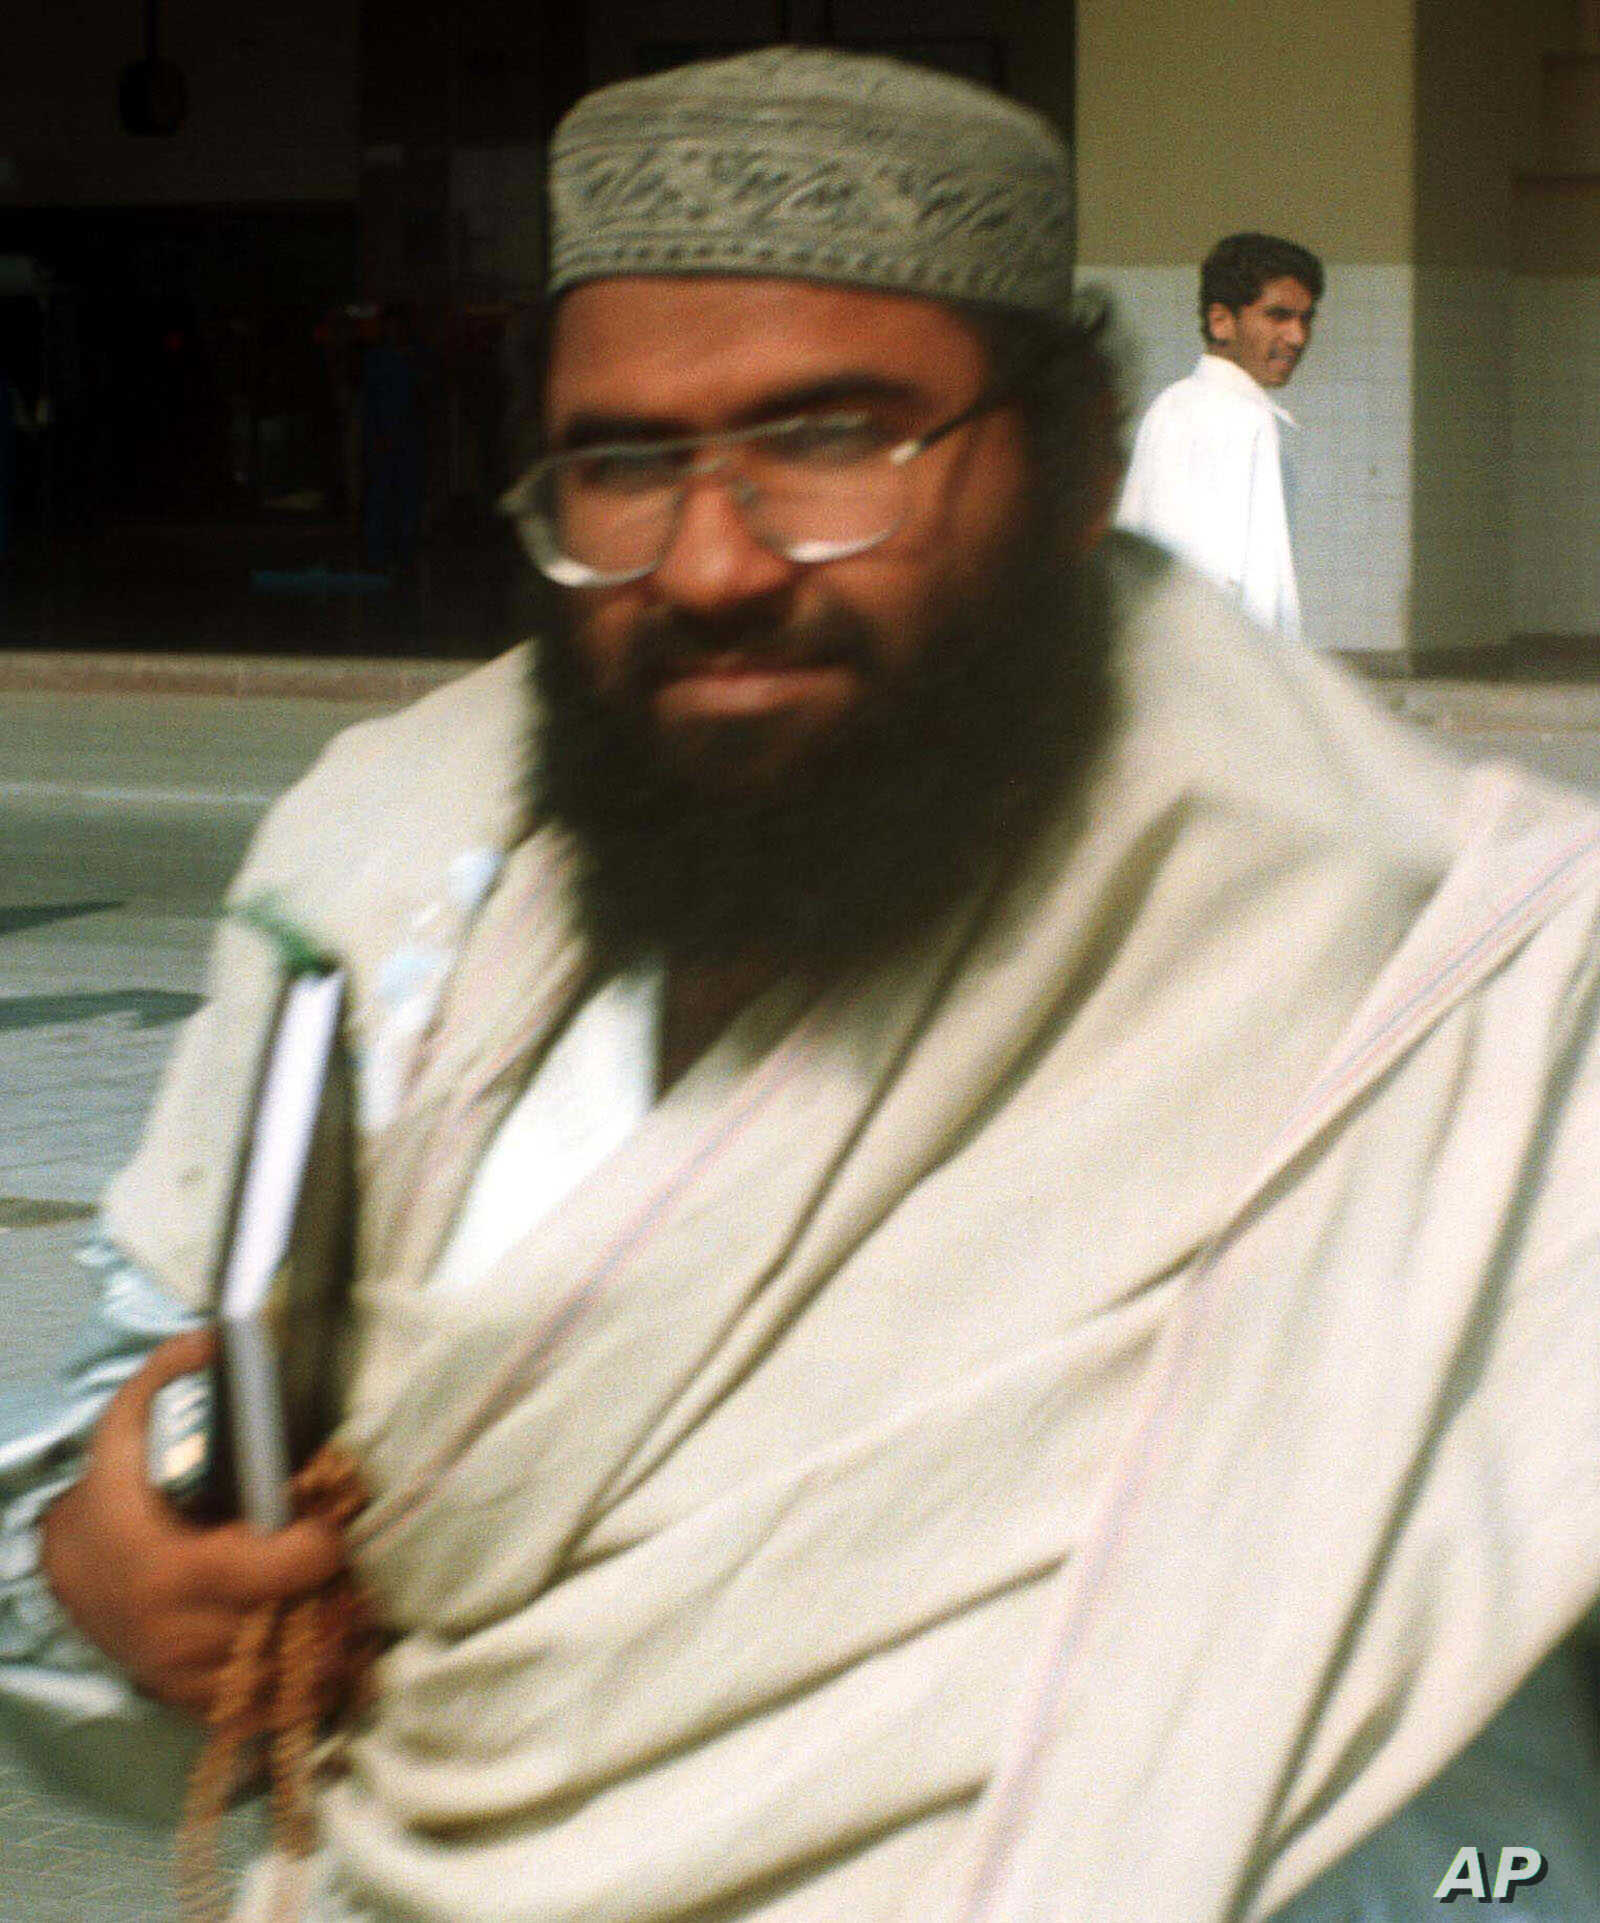 Maulana Masood Azhar, Muslim cleric and leader of the militant group fighting in Indian-held Kashmir against Indian forces arrives at Karachi airport, Jan. 22, 2000.